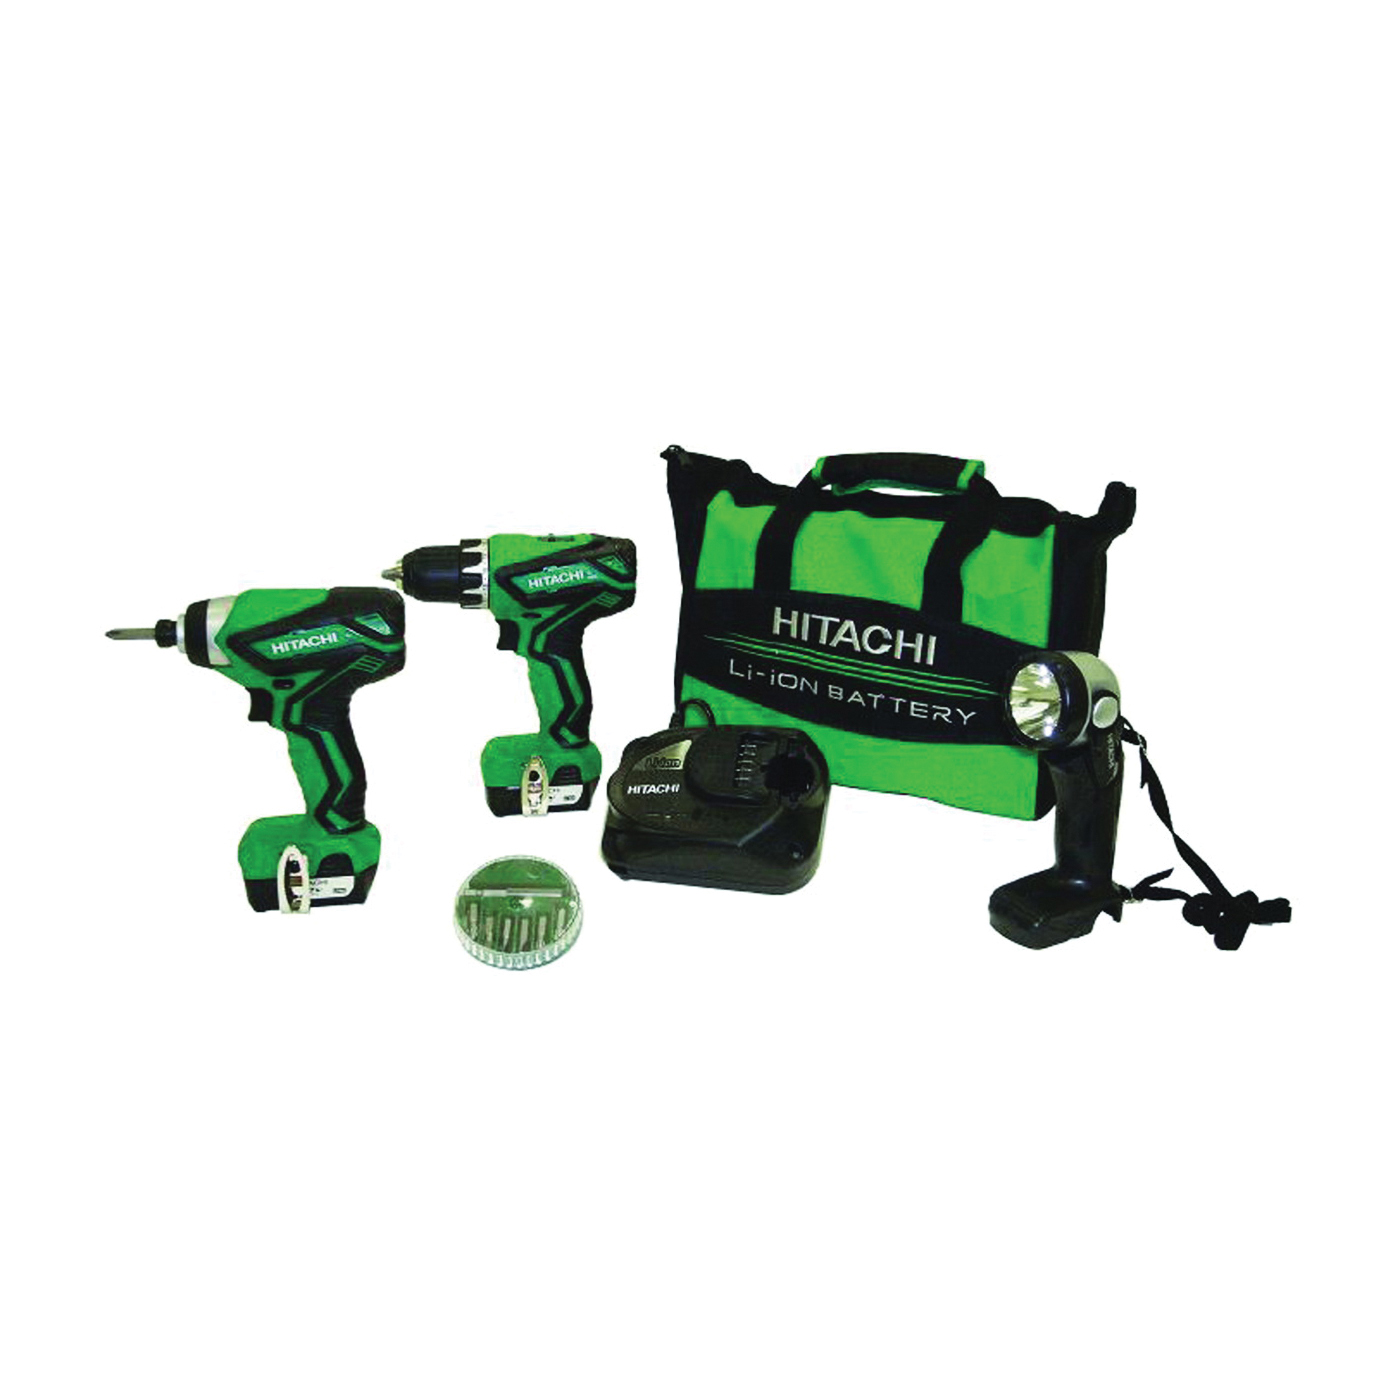 Picture of Metabo HPT KC10DFL2 3-Tool Combo Kit, Battery Included: Yes